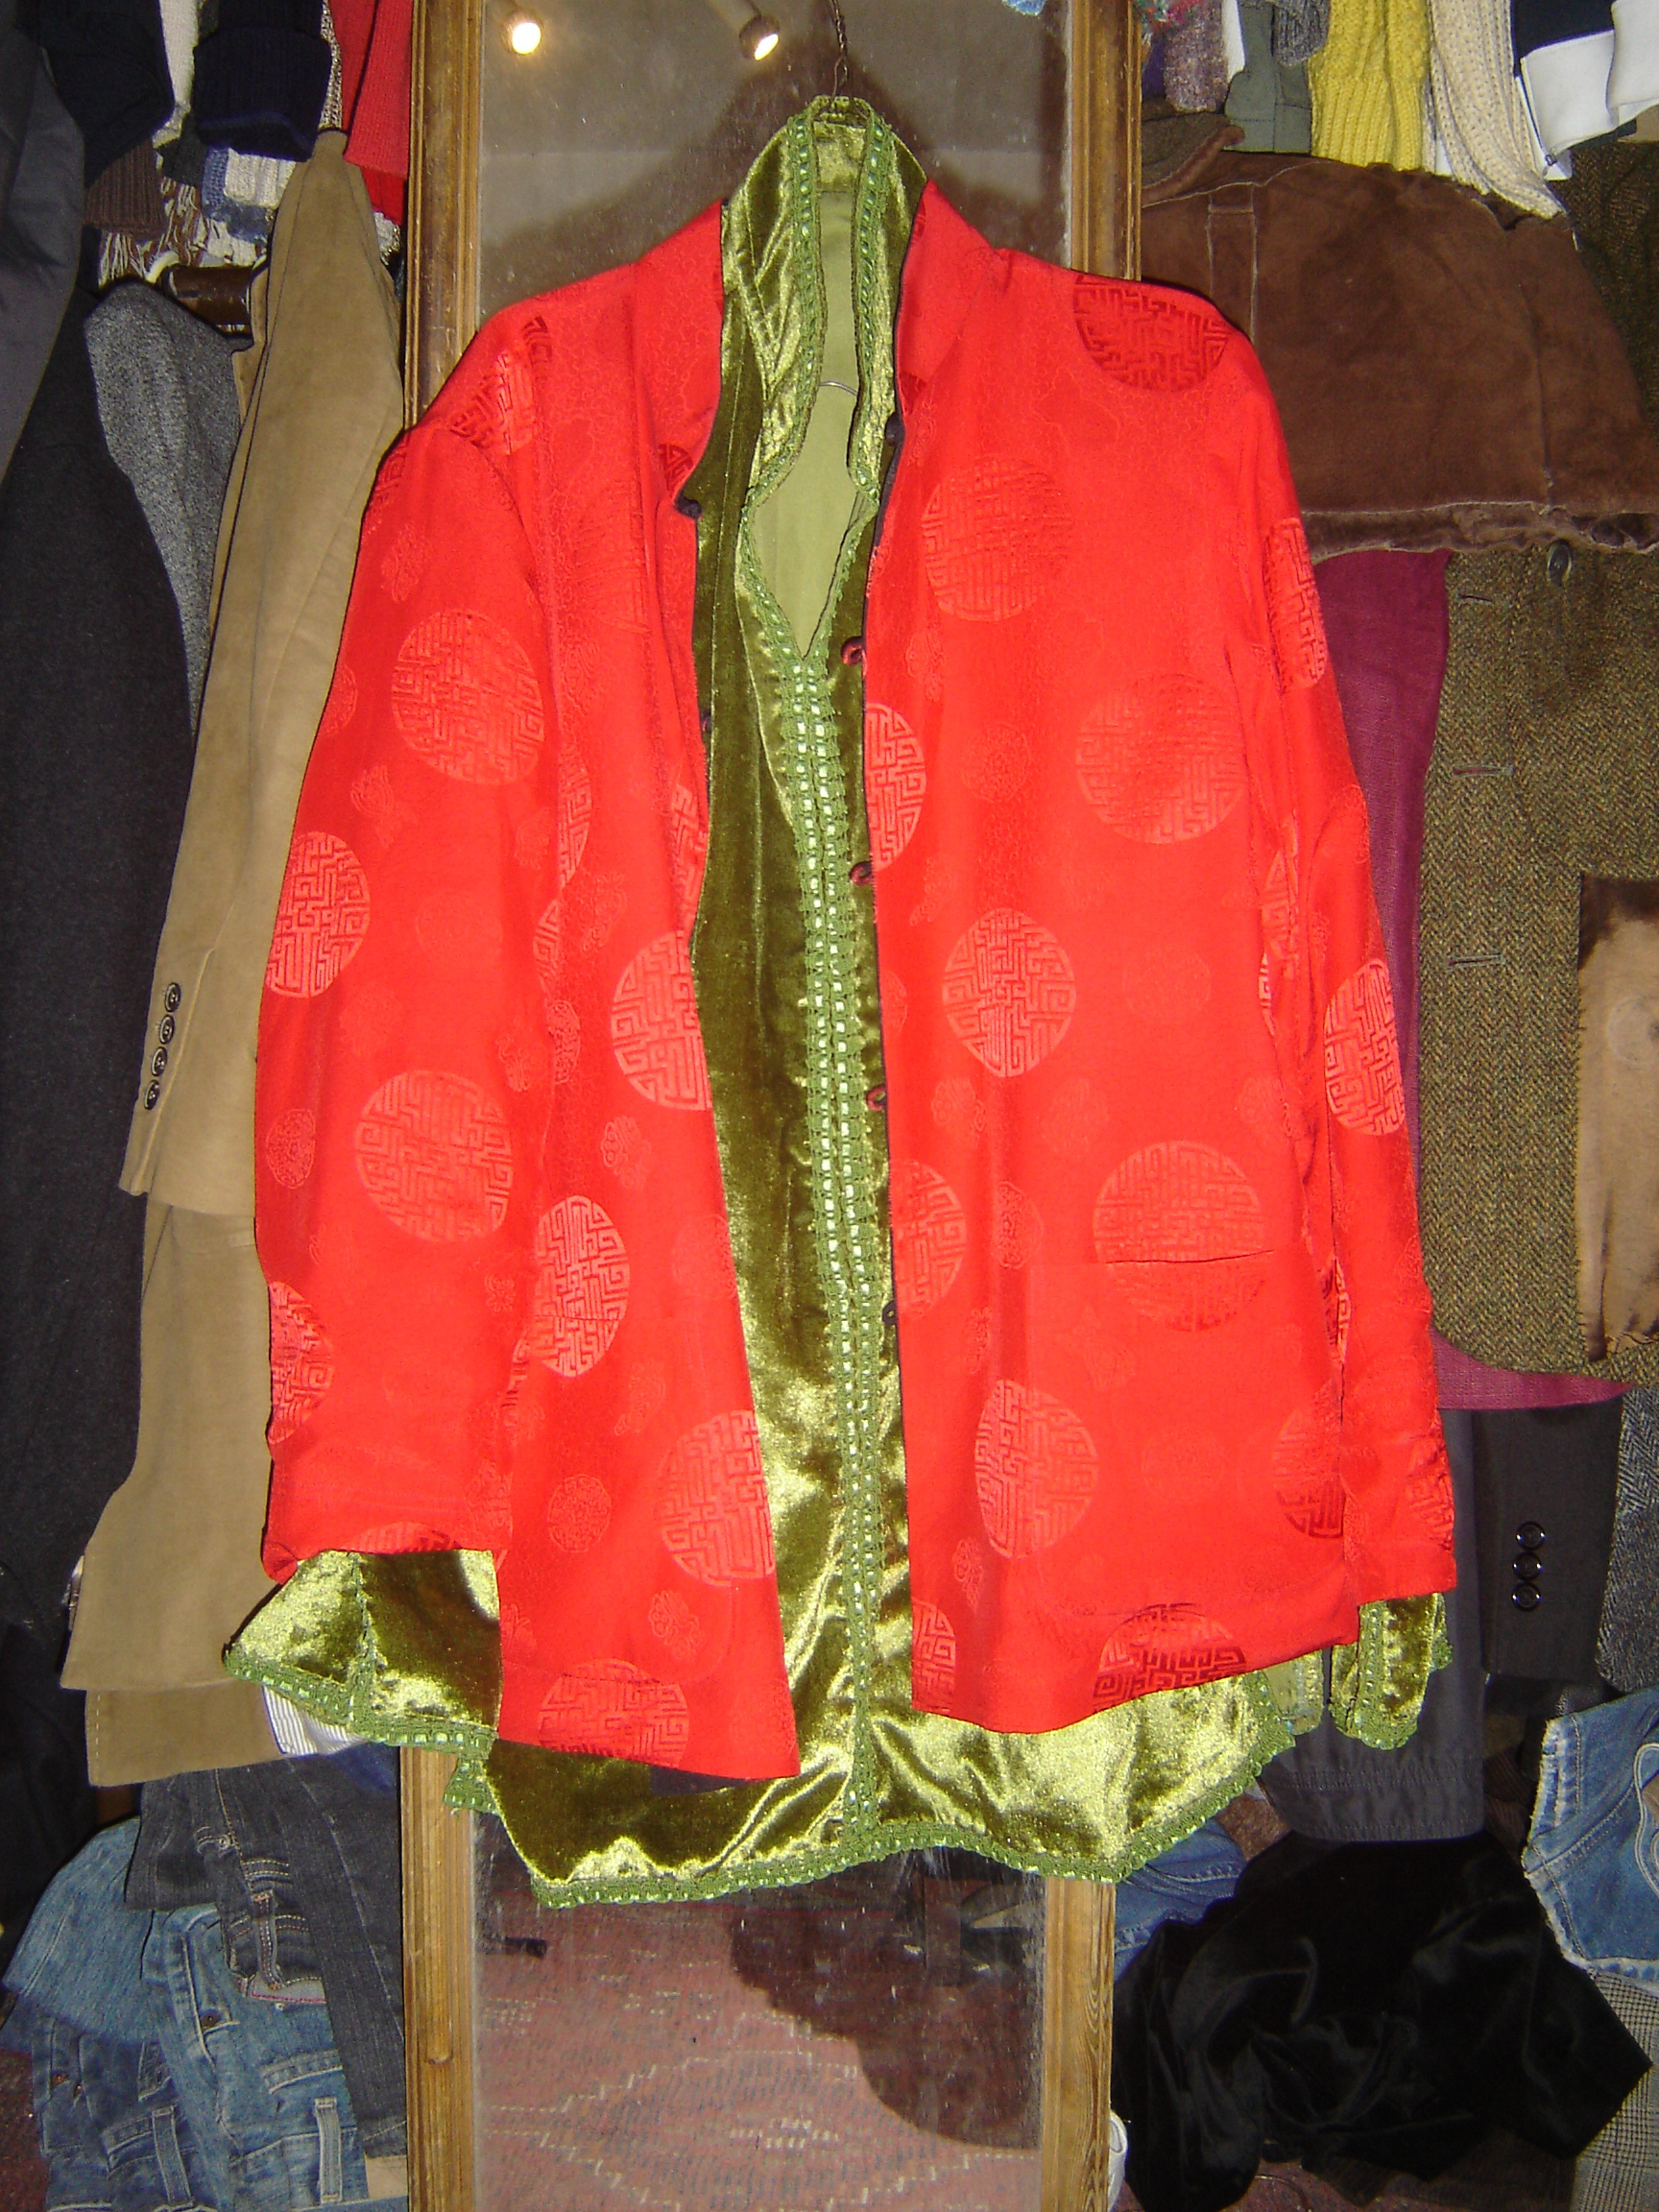 Red silk Chinese top and sage green velvet Moroccan shirt